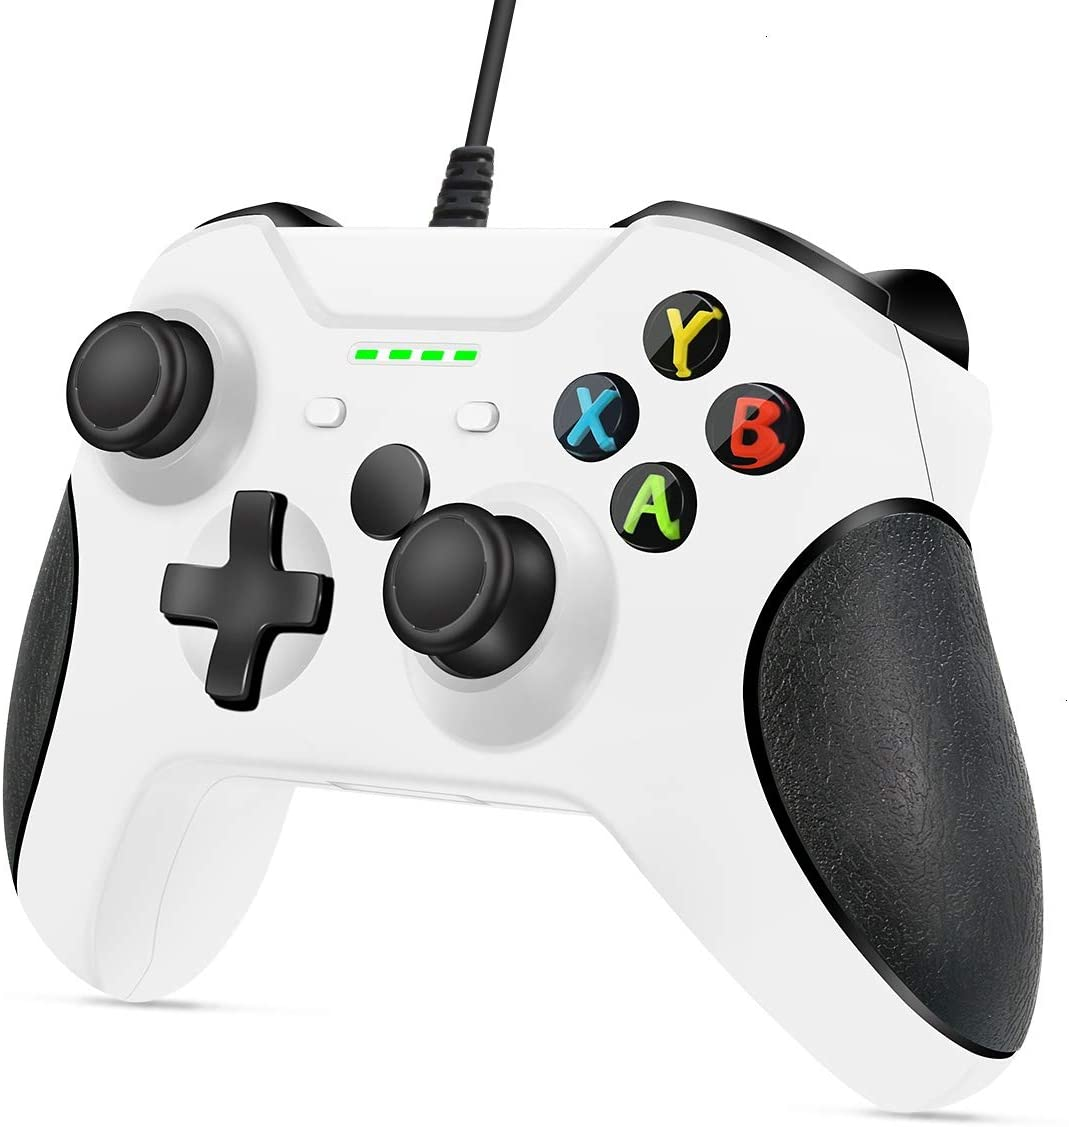 VOYEE Controller Replacement for Xbox One Controller, Enhanced Wired Controller with Headphone Jack/Double Shock/Upgraded Joystick Compatible with Microsoft Xbox One/X/S/PC Windwos 10/8/7 (White)